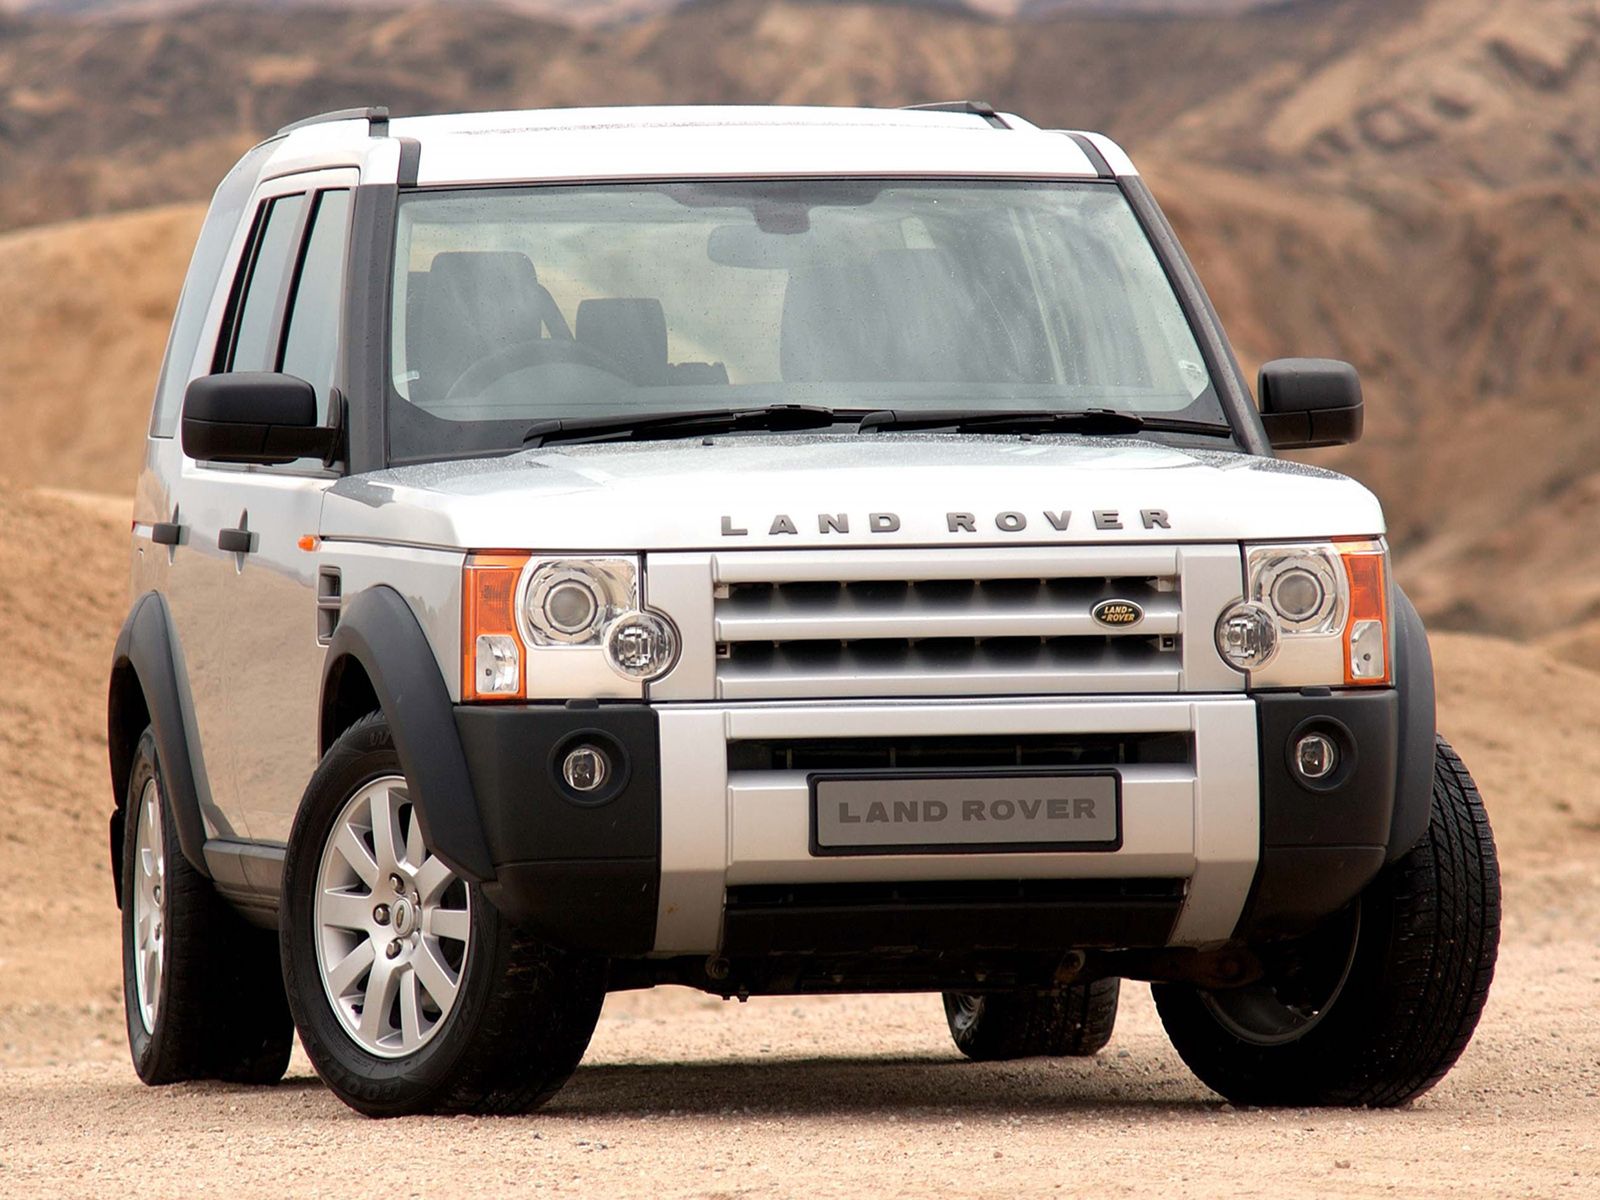 Land Rover Discovery III photos Gallery Page 2 CarsBase